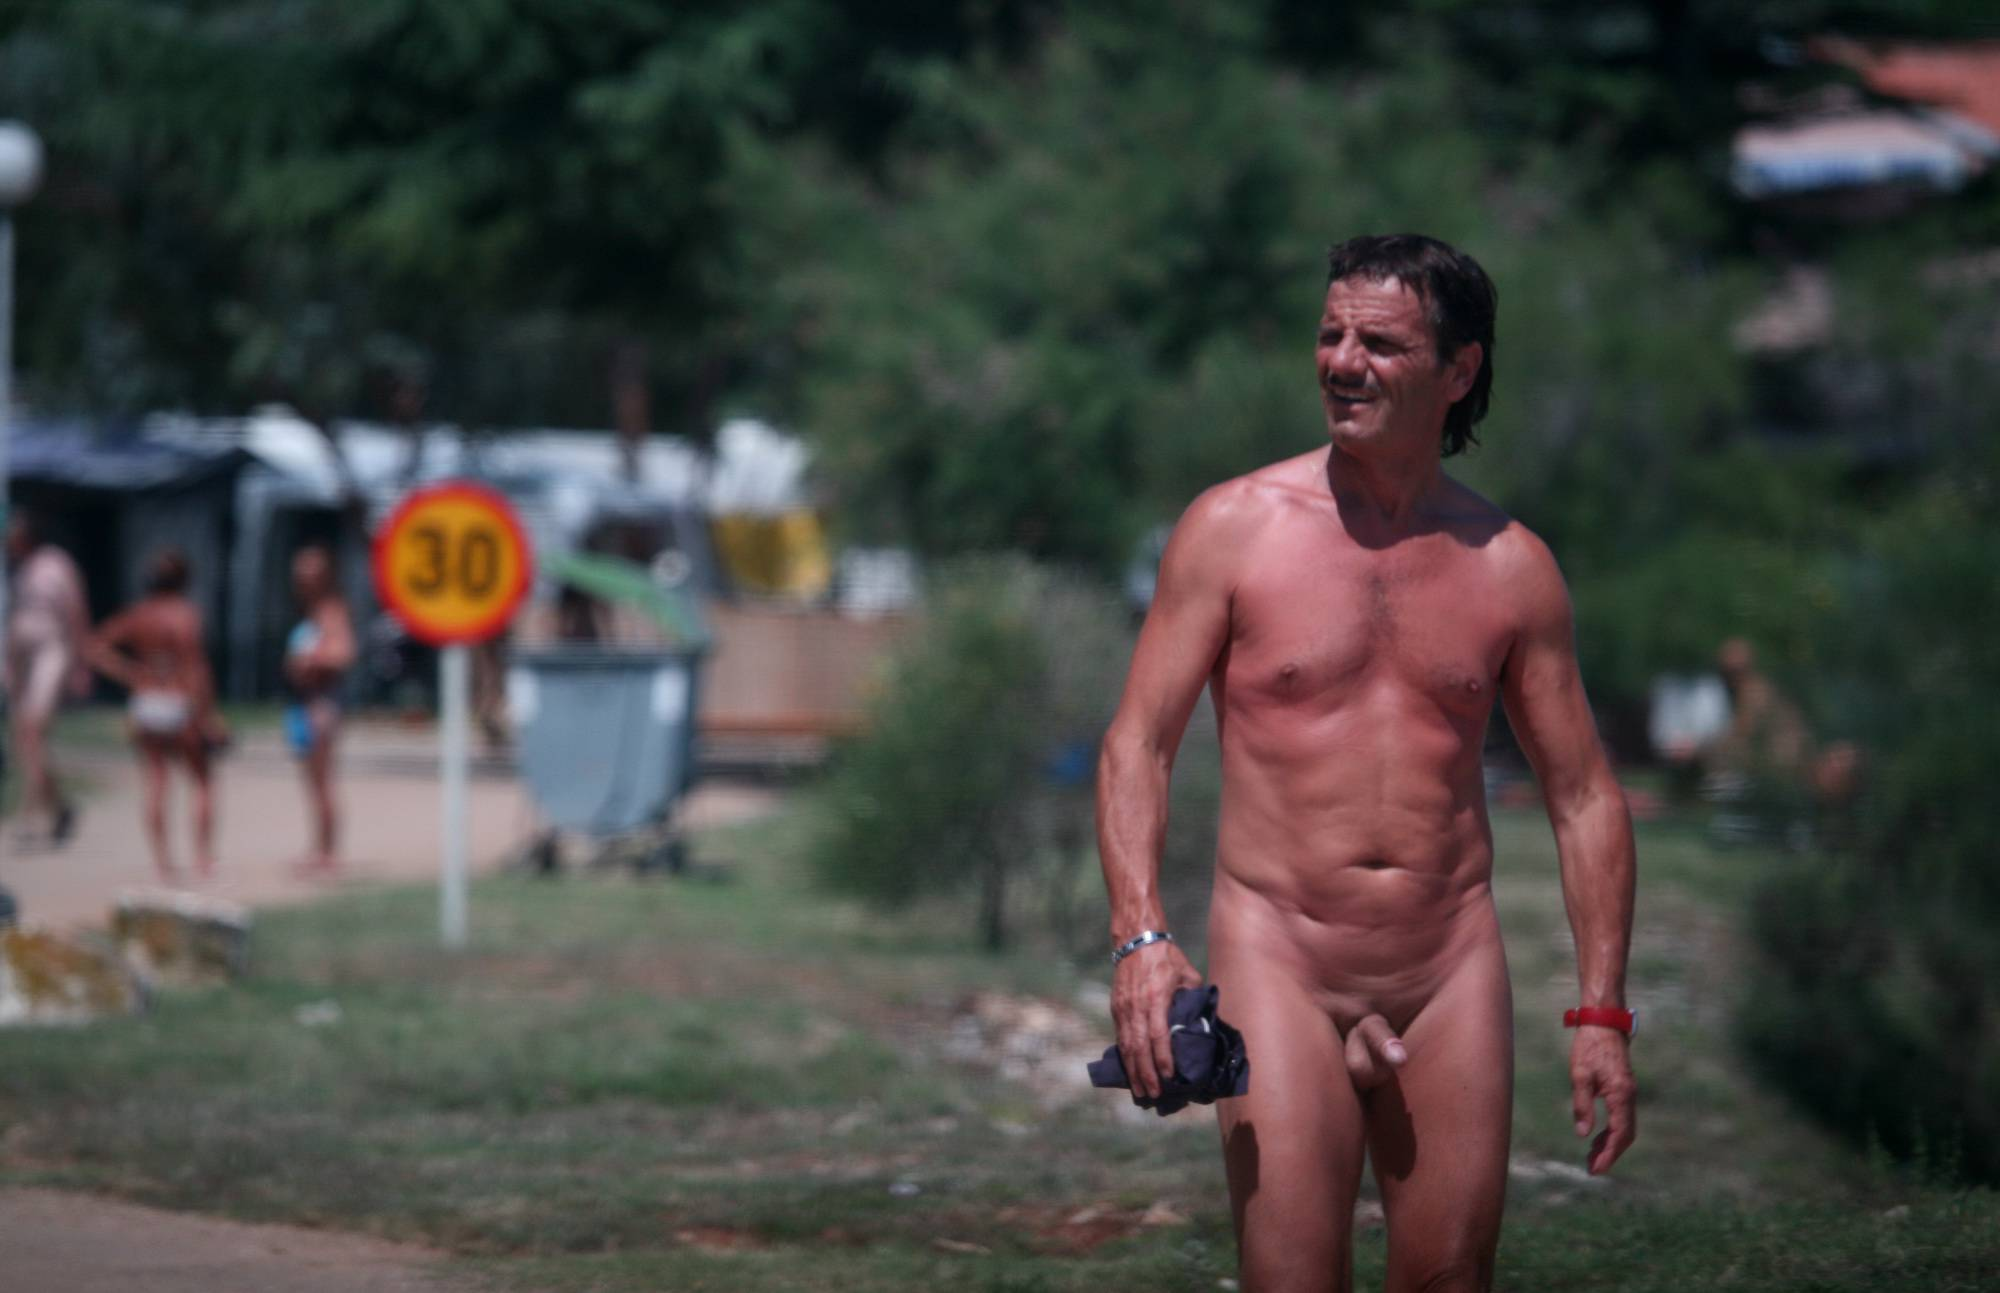 Packup and Nudists Leaving - 2